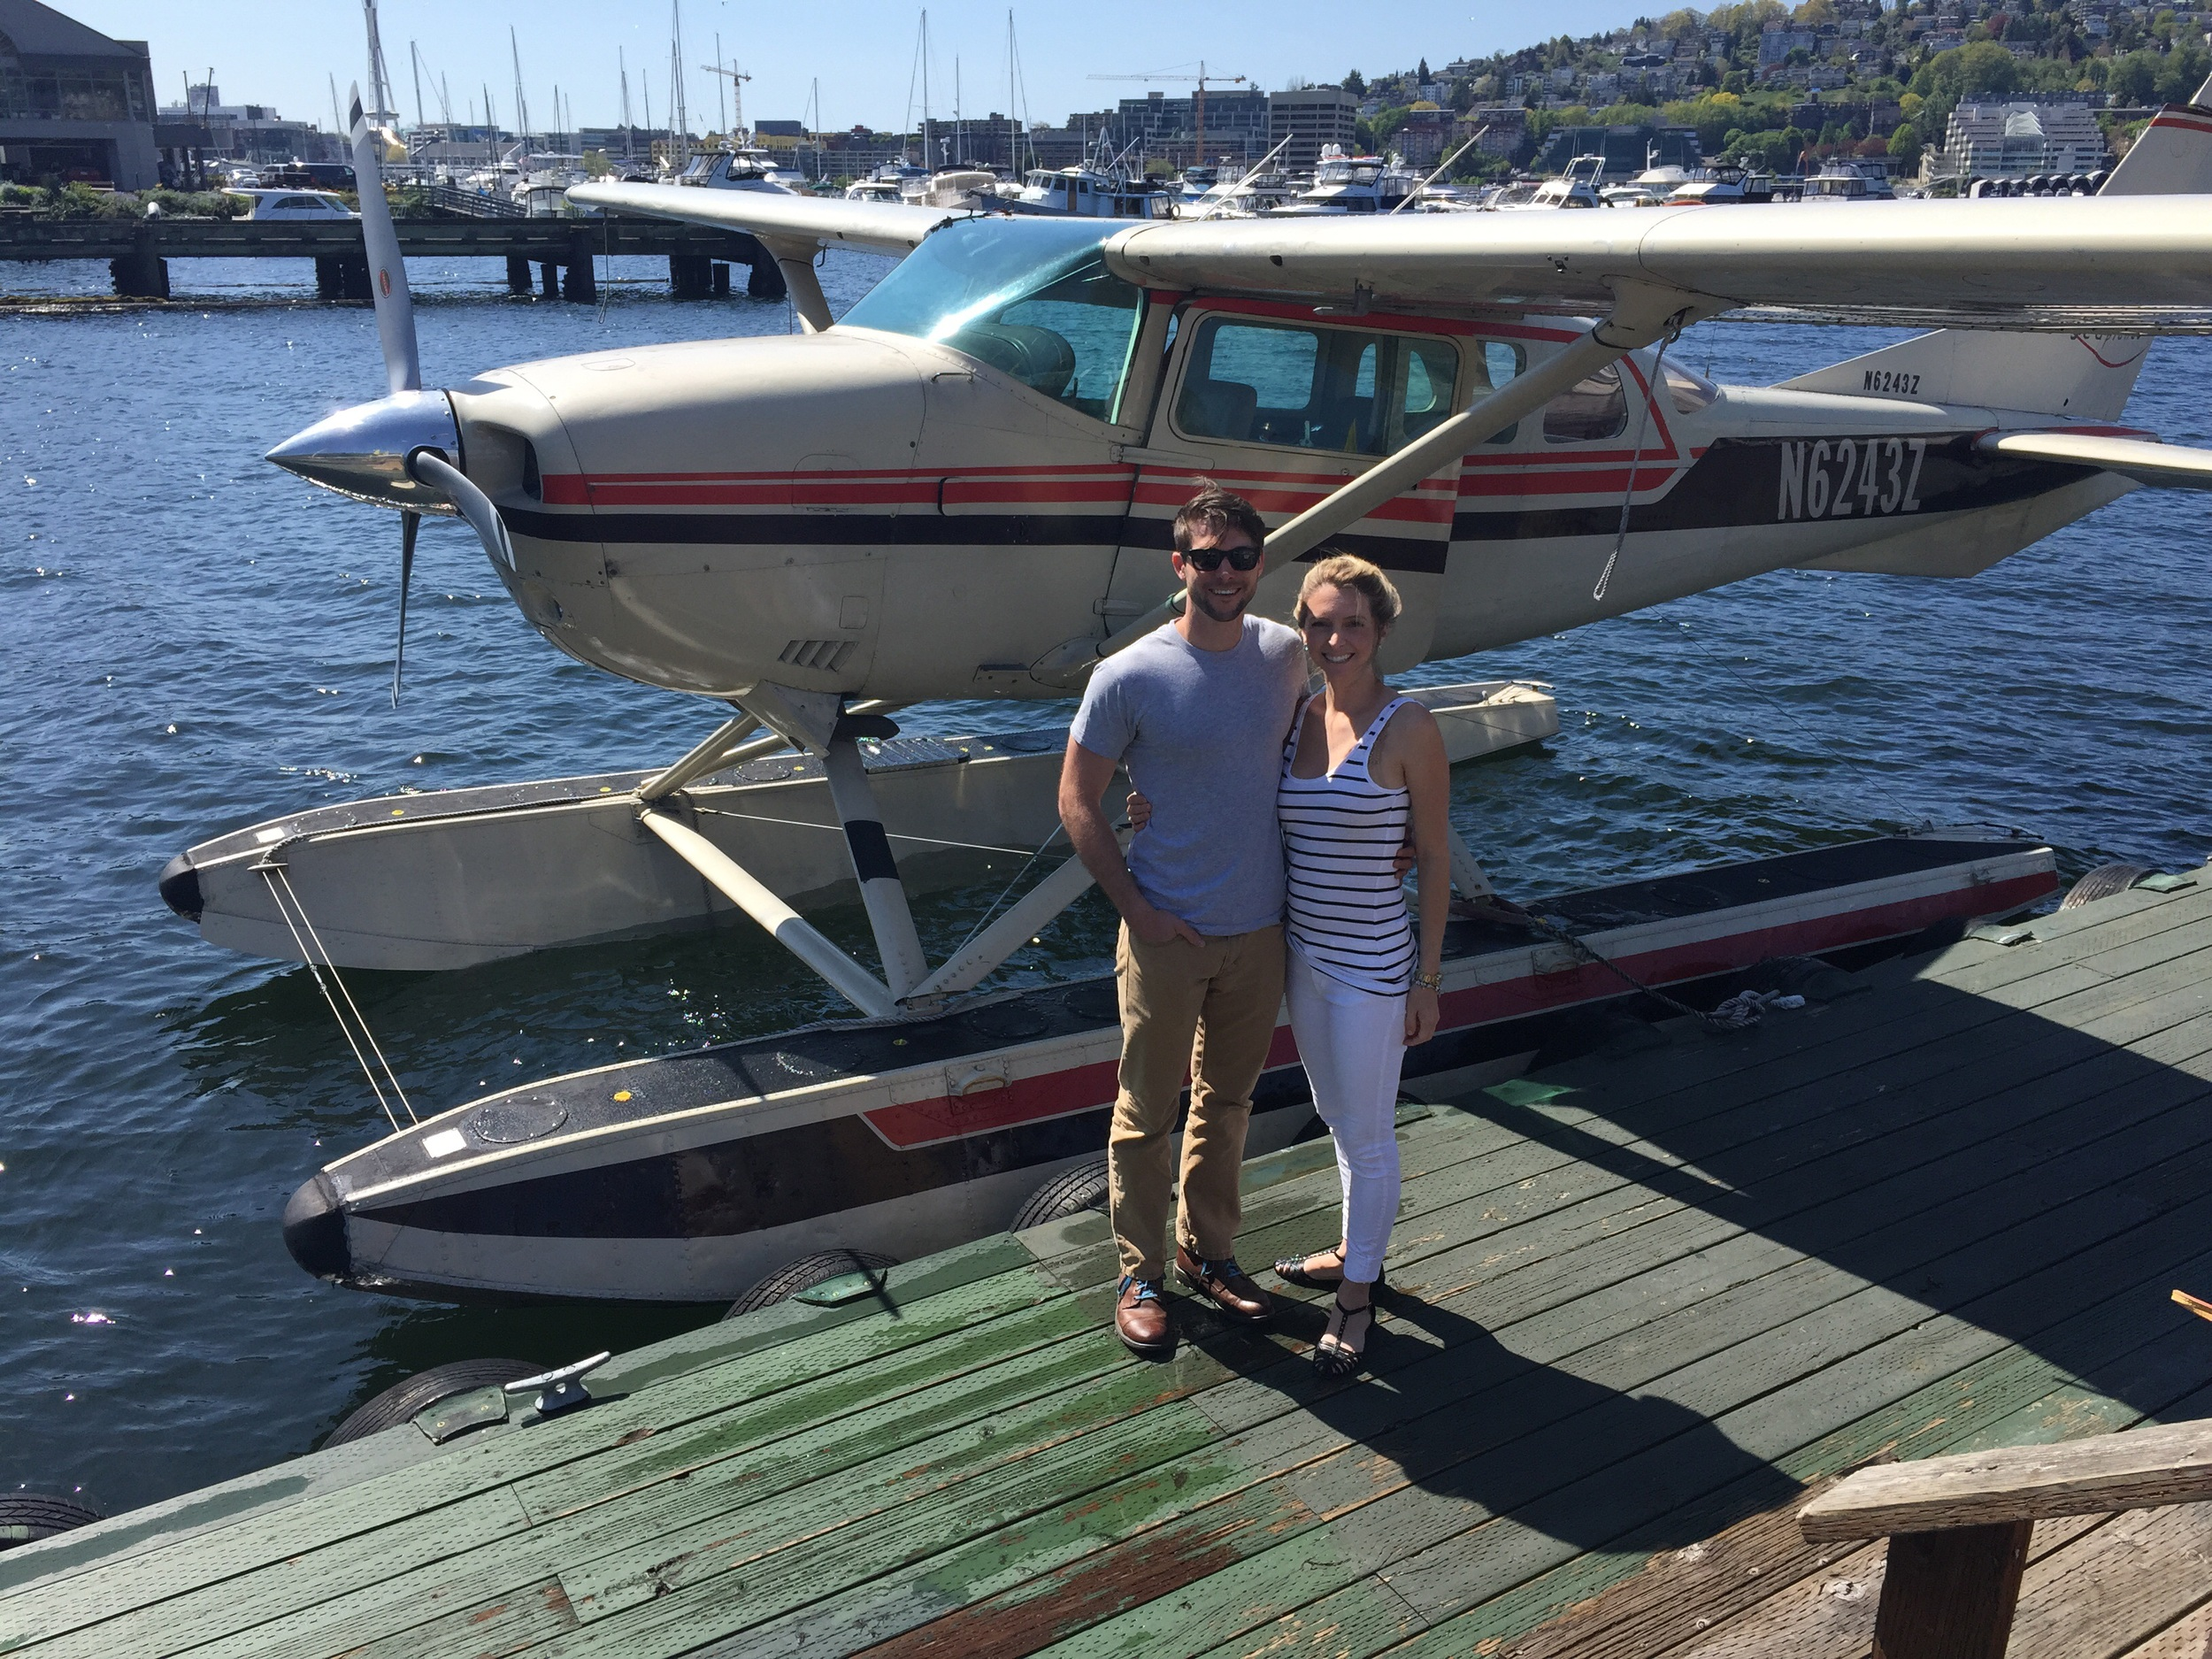 If you ever get a chance to ride in a seaplane, you should jump at the offer! Give  SEATTLE SEAPLANES  a glance or find one in your area!